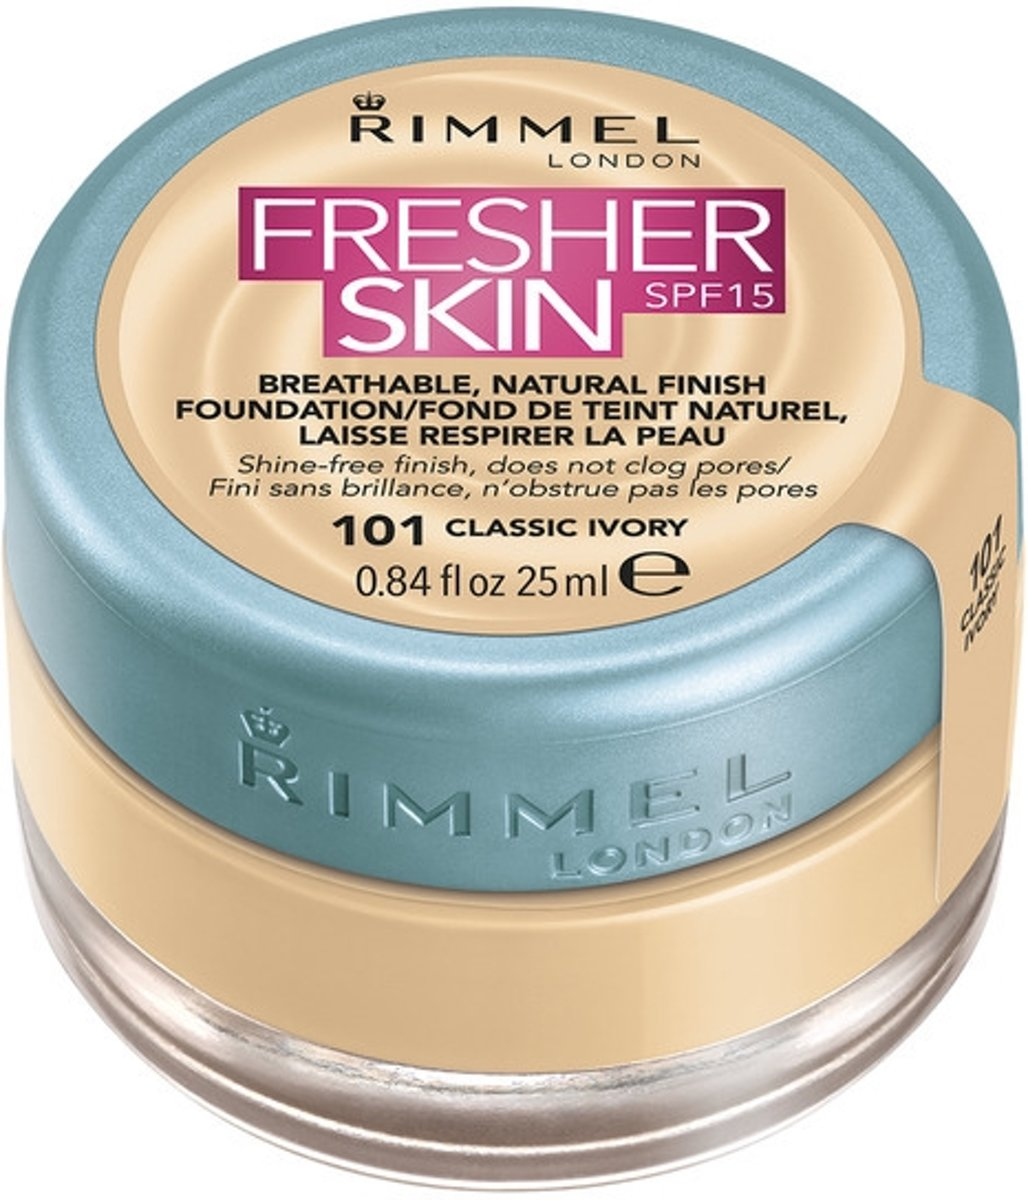 Rimmel London Fresher Skin Foundation - 101 Classic Ivory